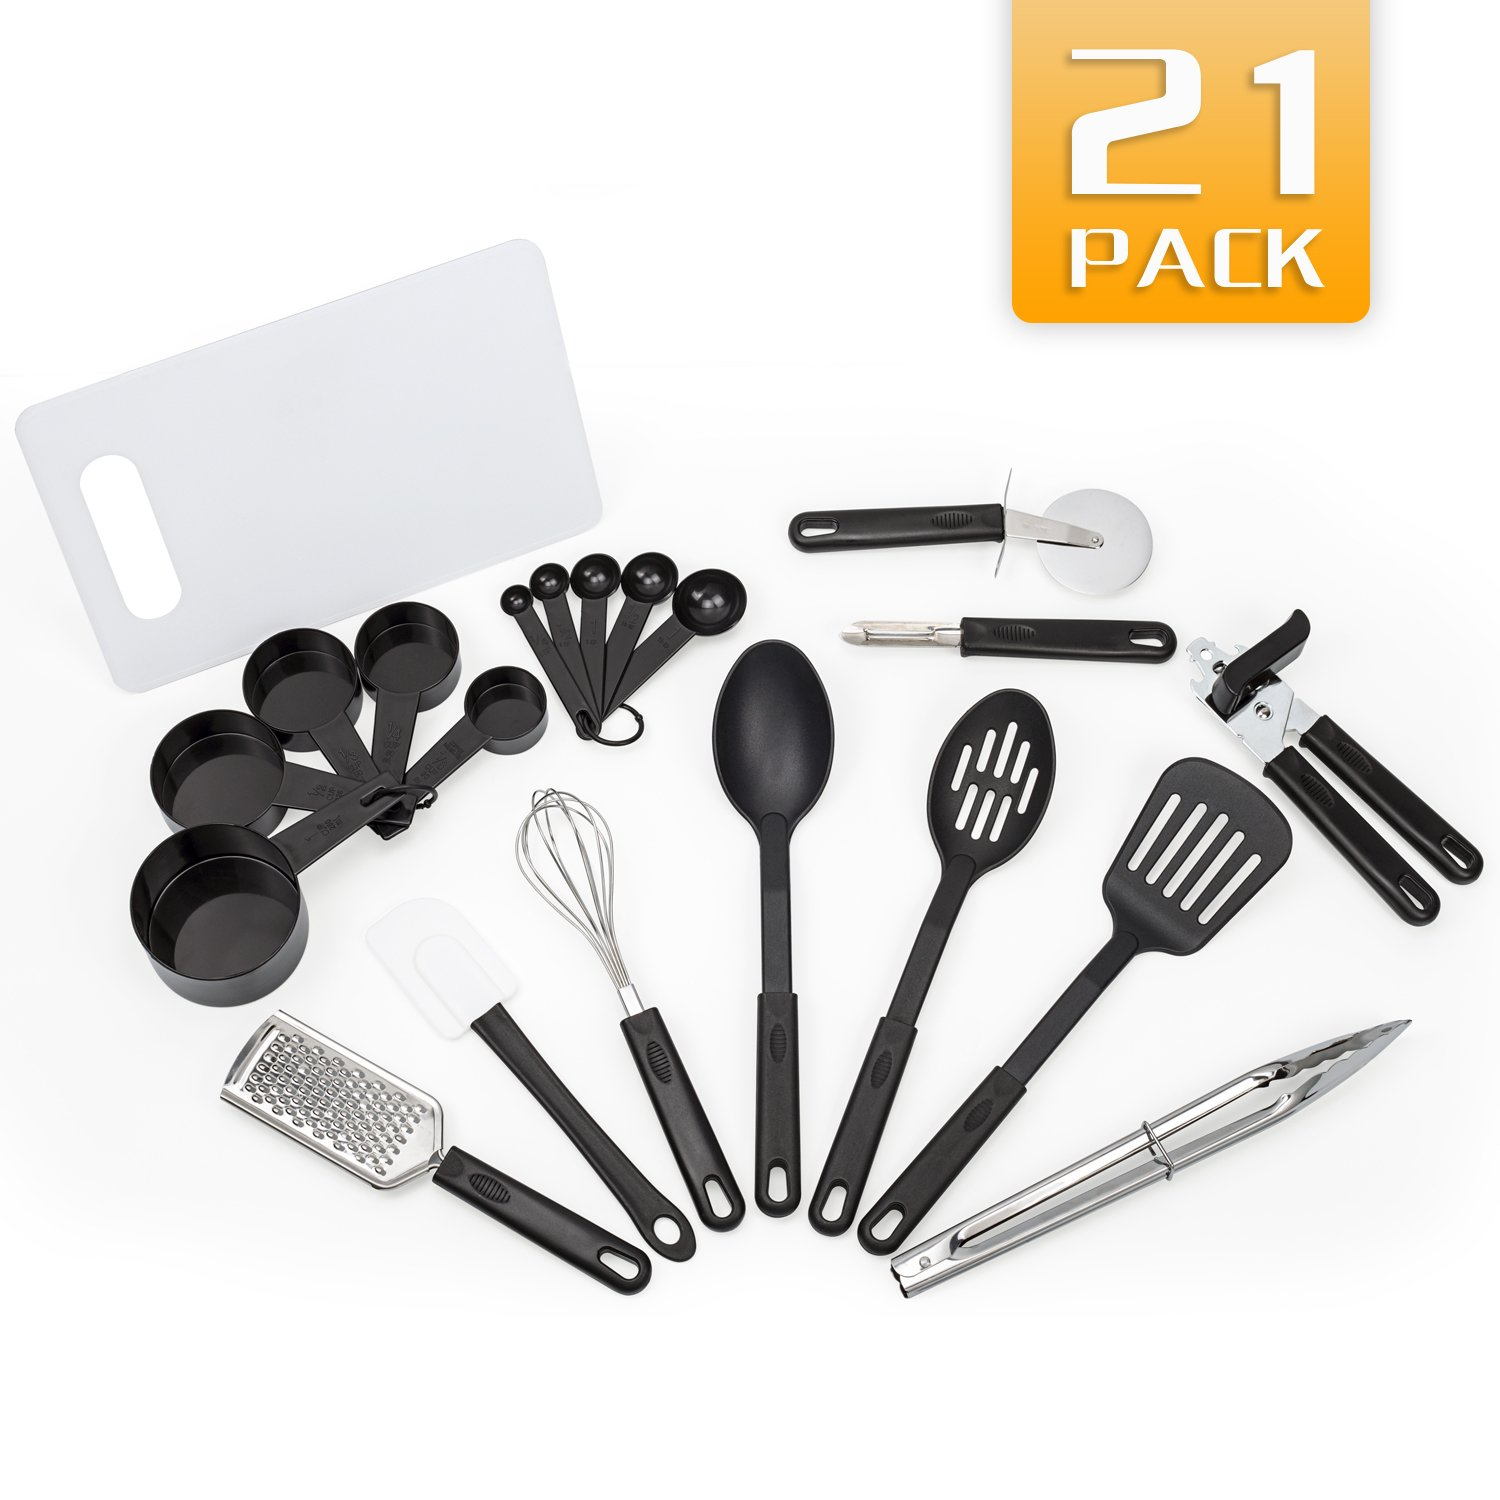 Kitchen Utensils 21 Nylon and Stainless Steel Cooking Utensils with Cutting Board - Nonstick Kitchen Utensil Set Cooking Tool - Dishwasher Safe